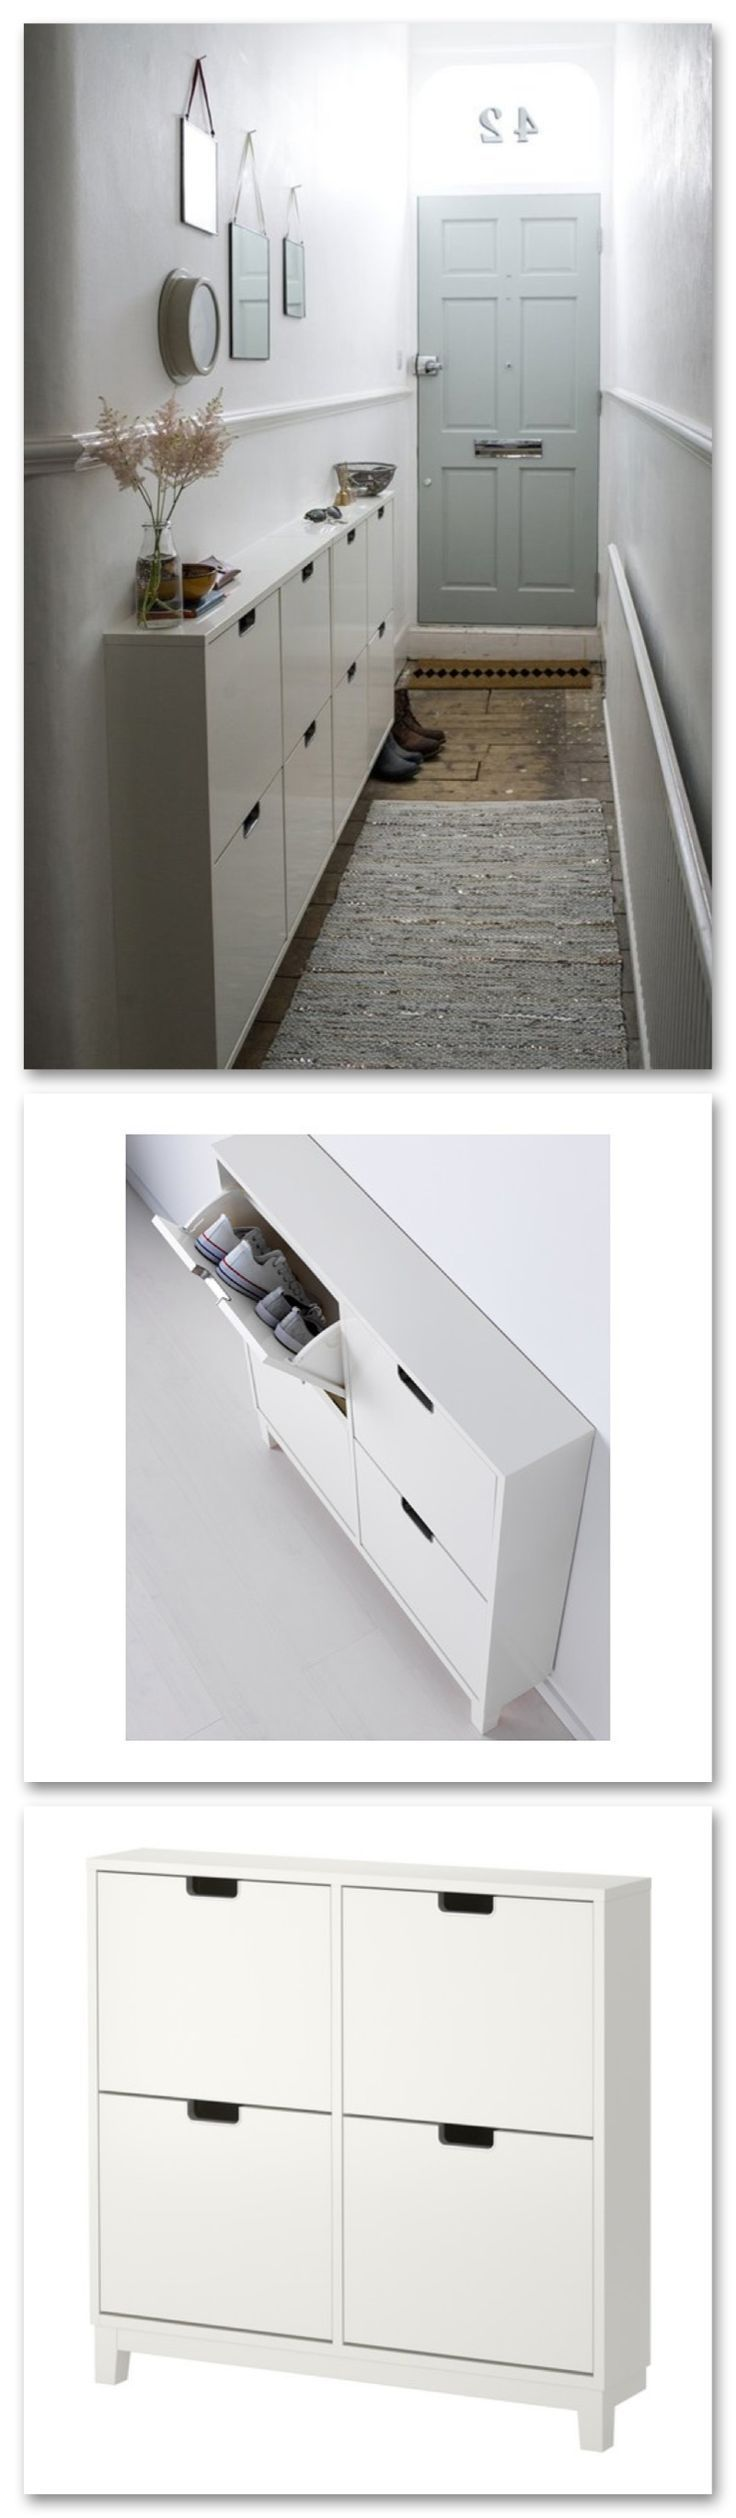 Excellent For A Slender Corridor. Stall Shoe Cupboard From IKEA. $89…